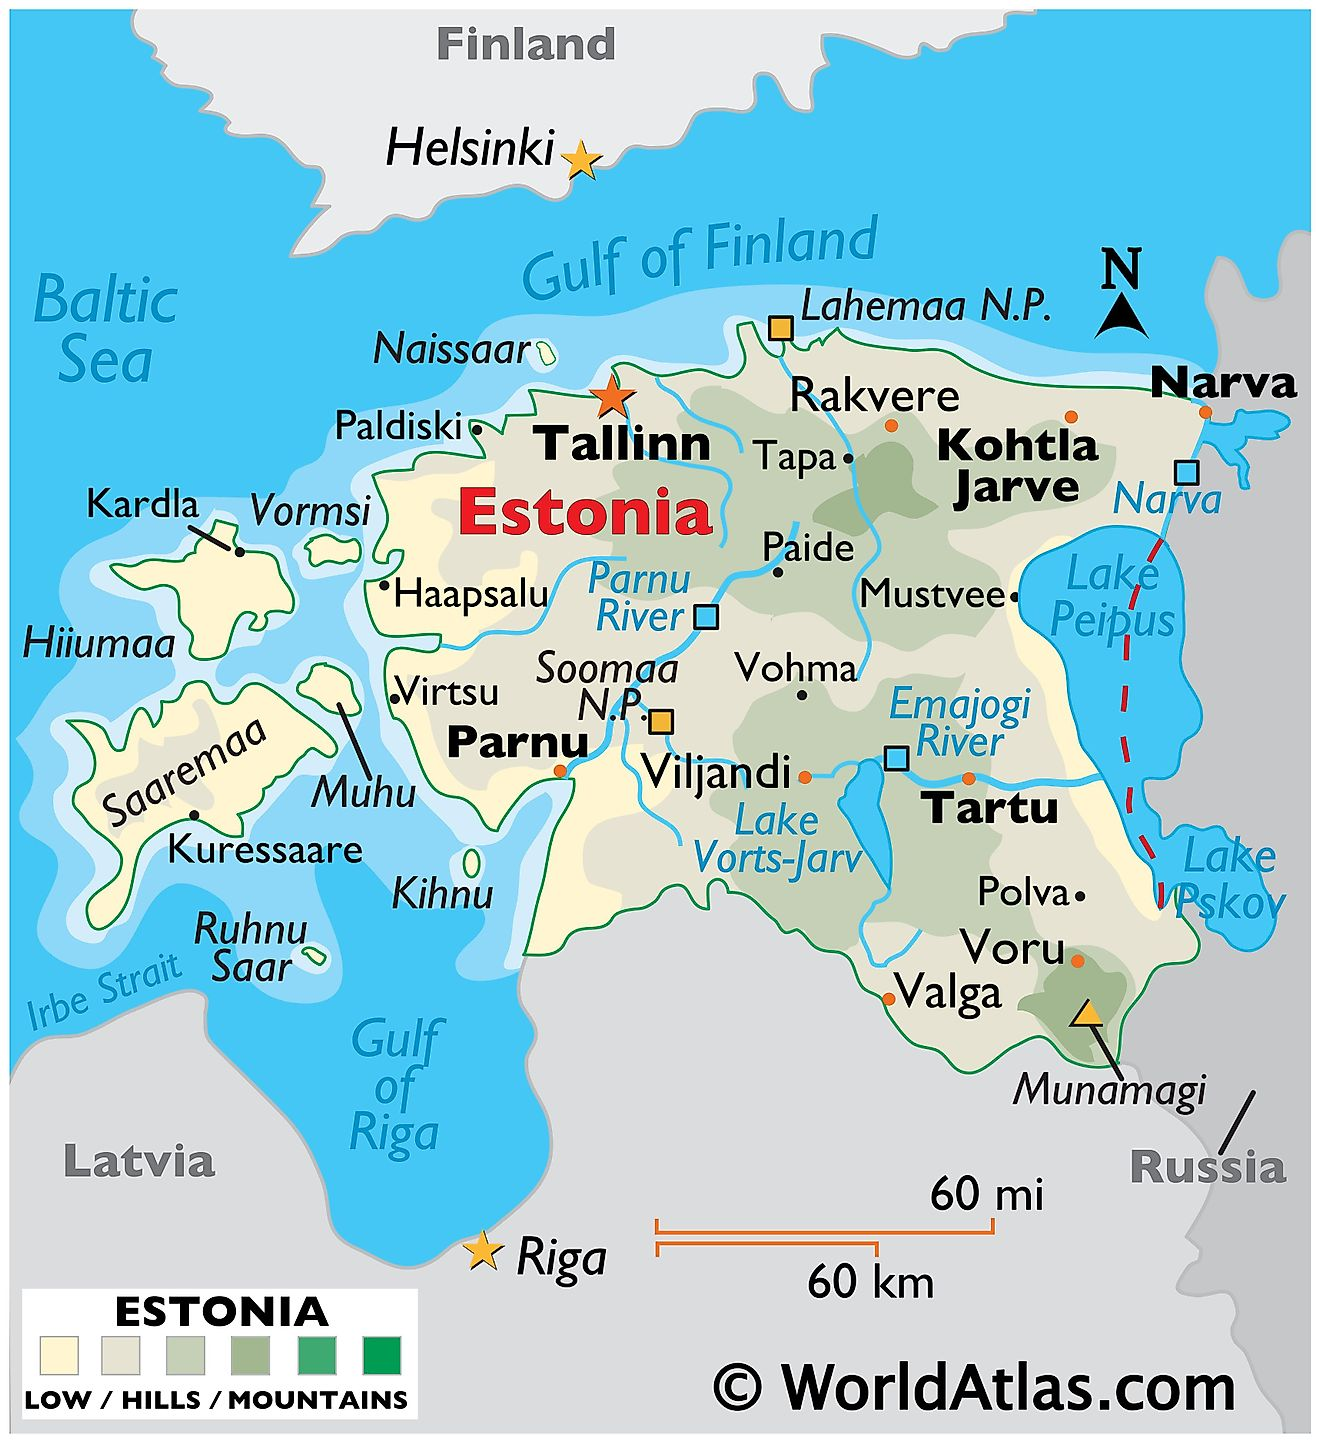 Physical Map of Estonia showing terrain, major rivers, extreme points, main islands, major lakes, important cities, international boundaries, etc.